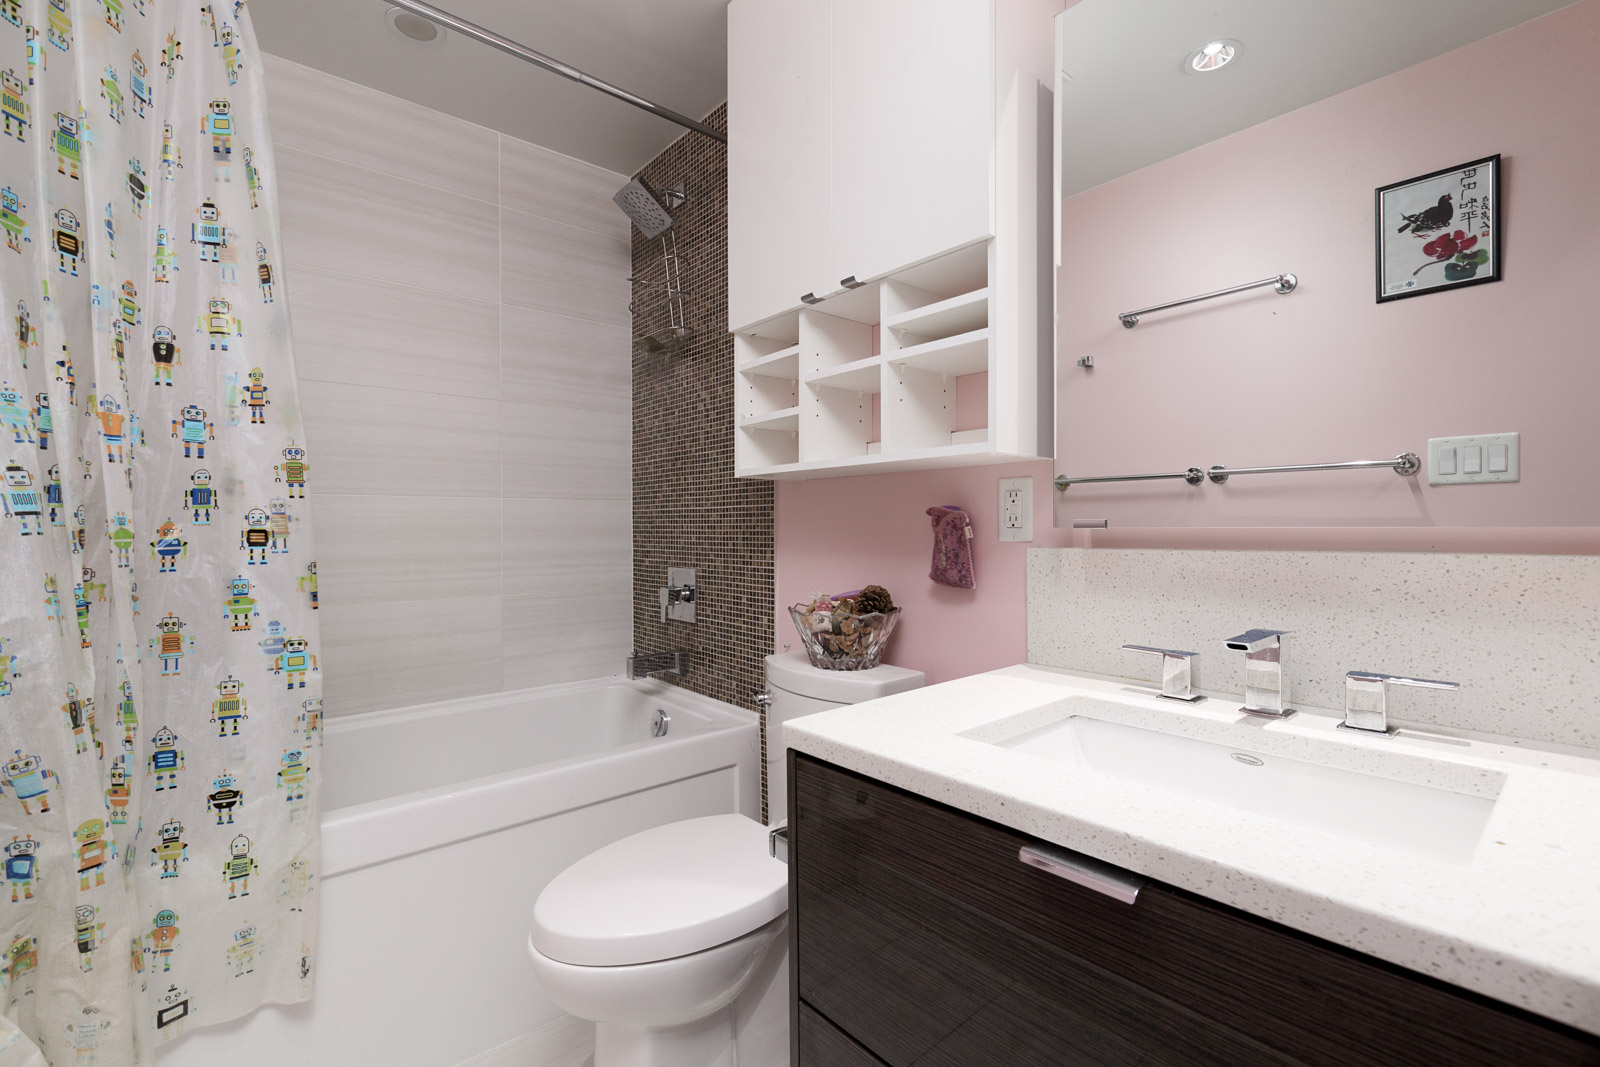 Bathroom with toilet, bath, tiled walls, and vanity and mirror with dark cabinet doors